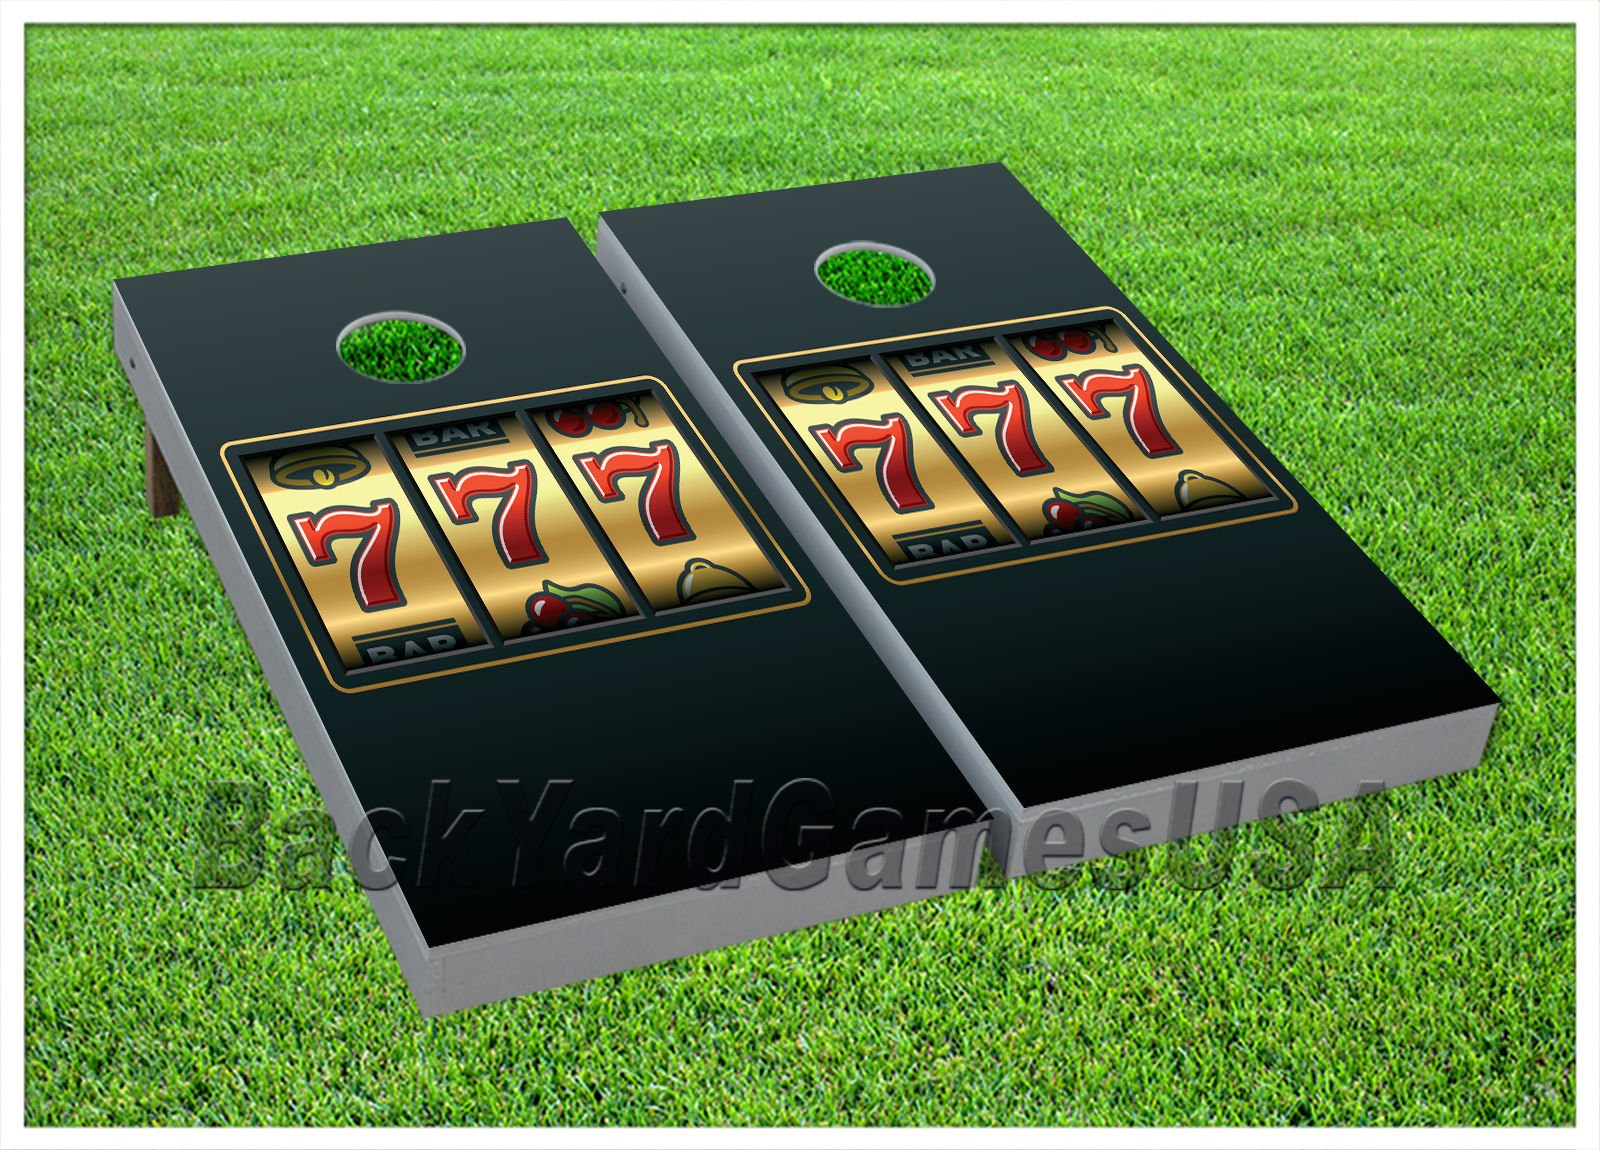 CORNHOLE BEANBAG TOSS GAME w Bags Game Boards Casino Lucky 7's Gold 903 by BackYardGamesUSA